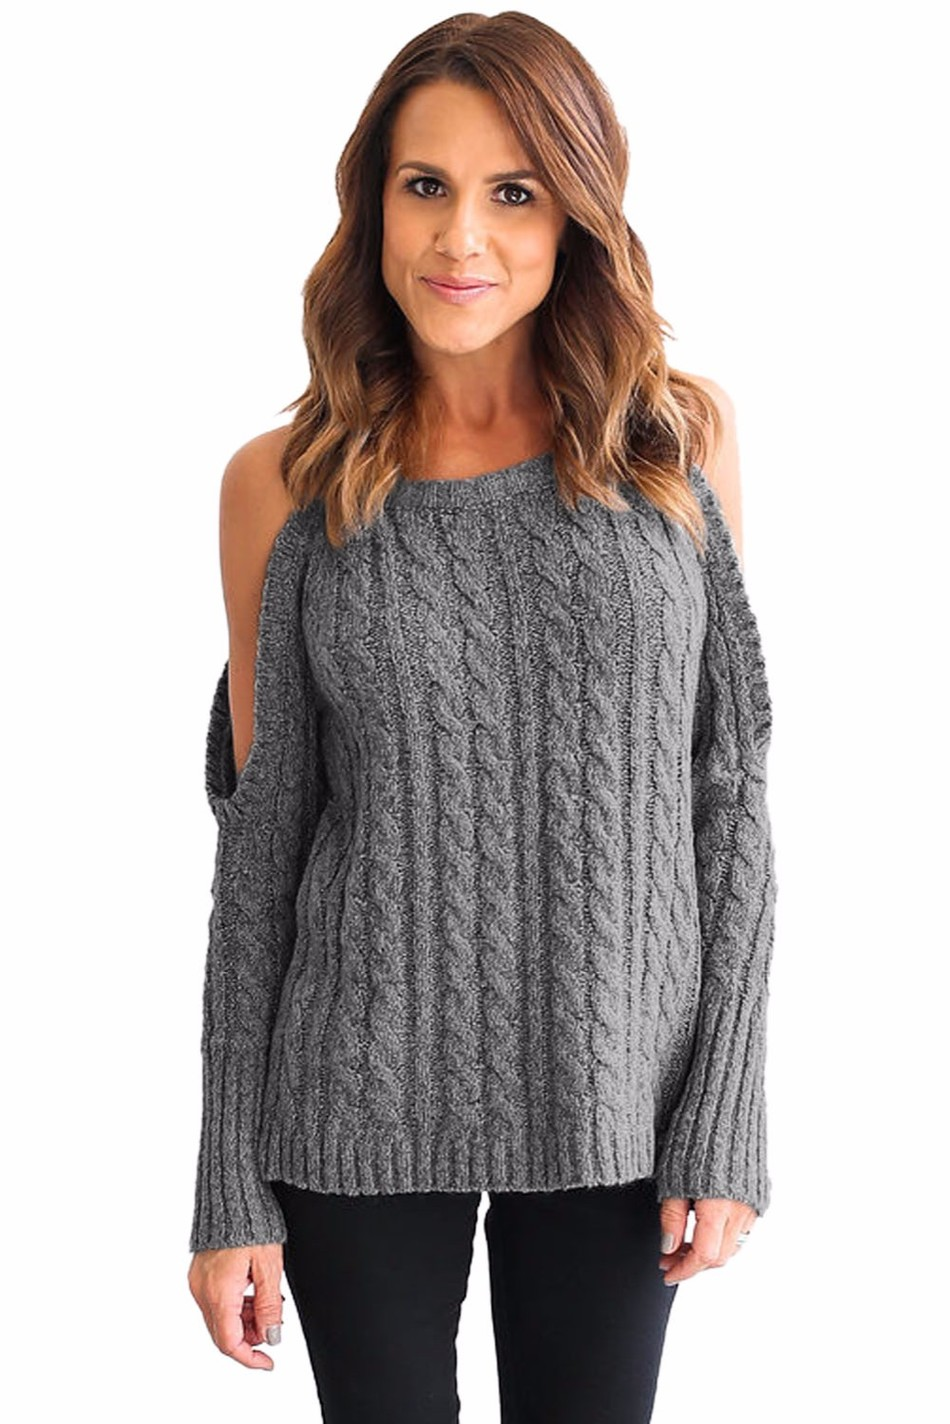 Compare Prices on Cable Knit Sweaters for Women- Online Shopping ...